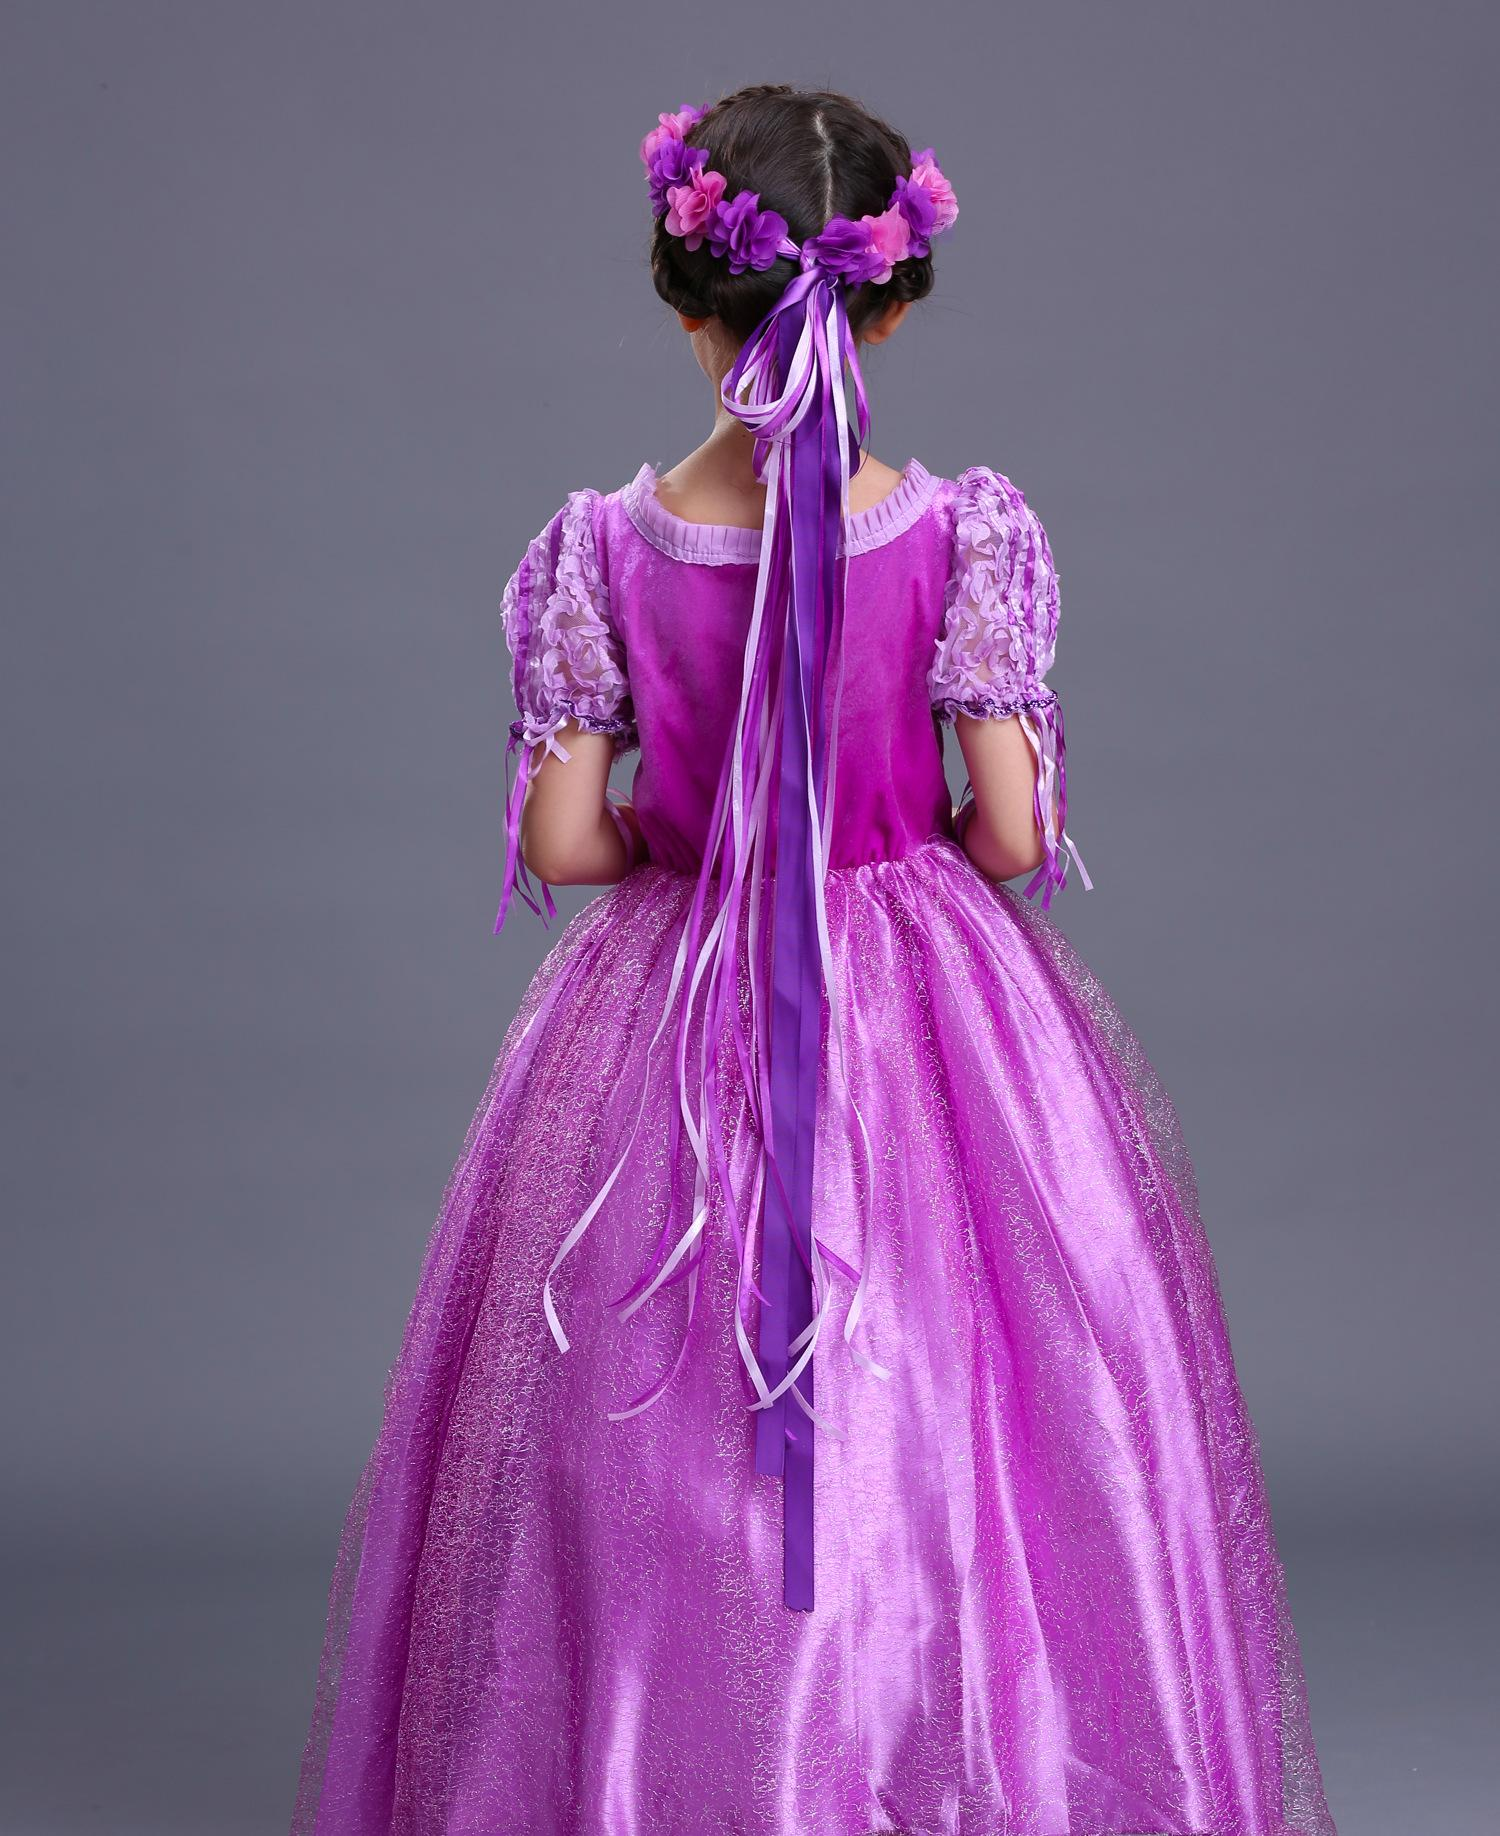 Purple Girls princess dress Christmas performance wear gifts Layer tutu cosplay party dresses Gloves flowers beads